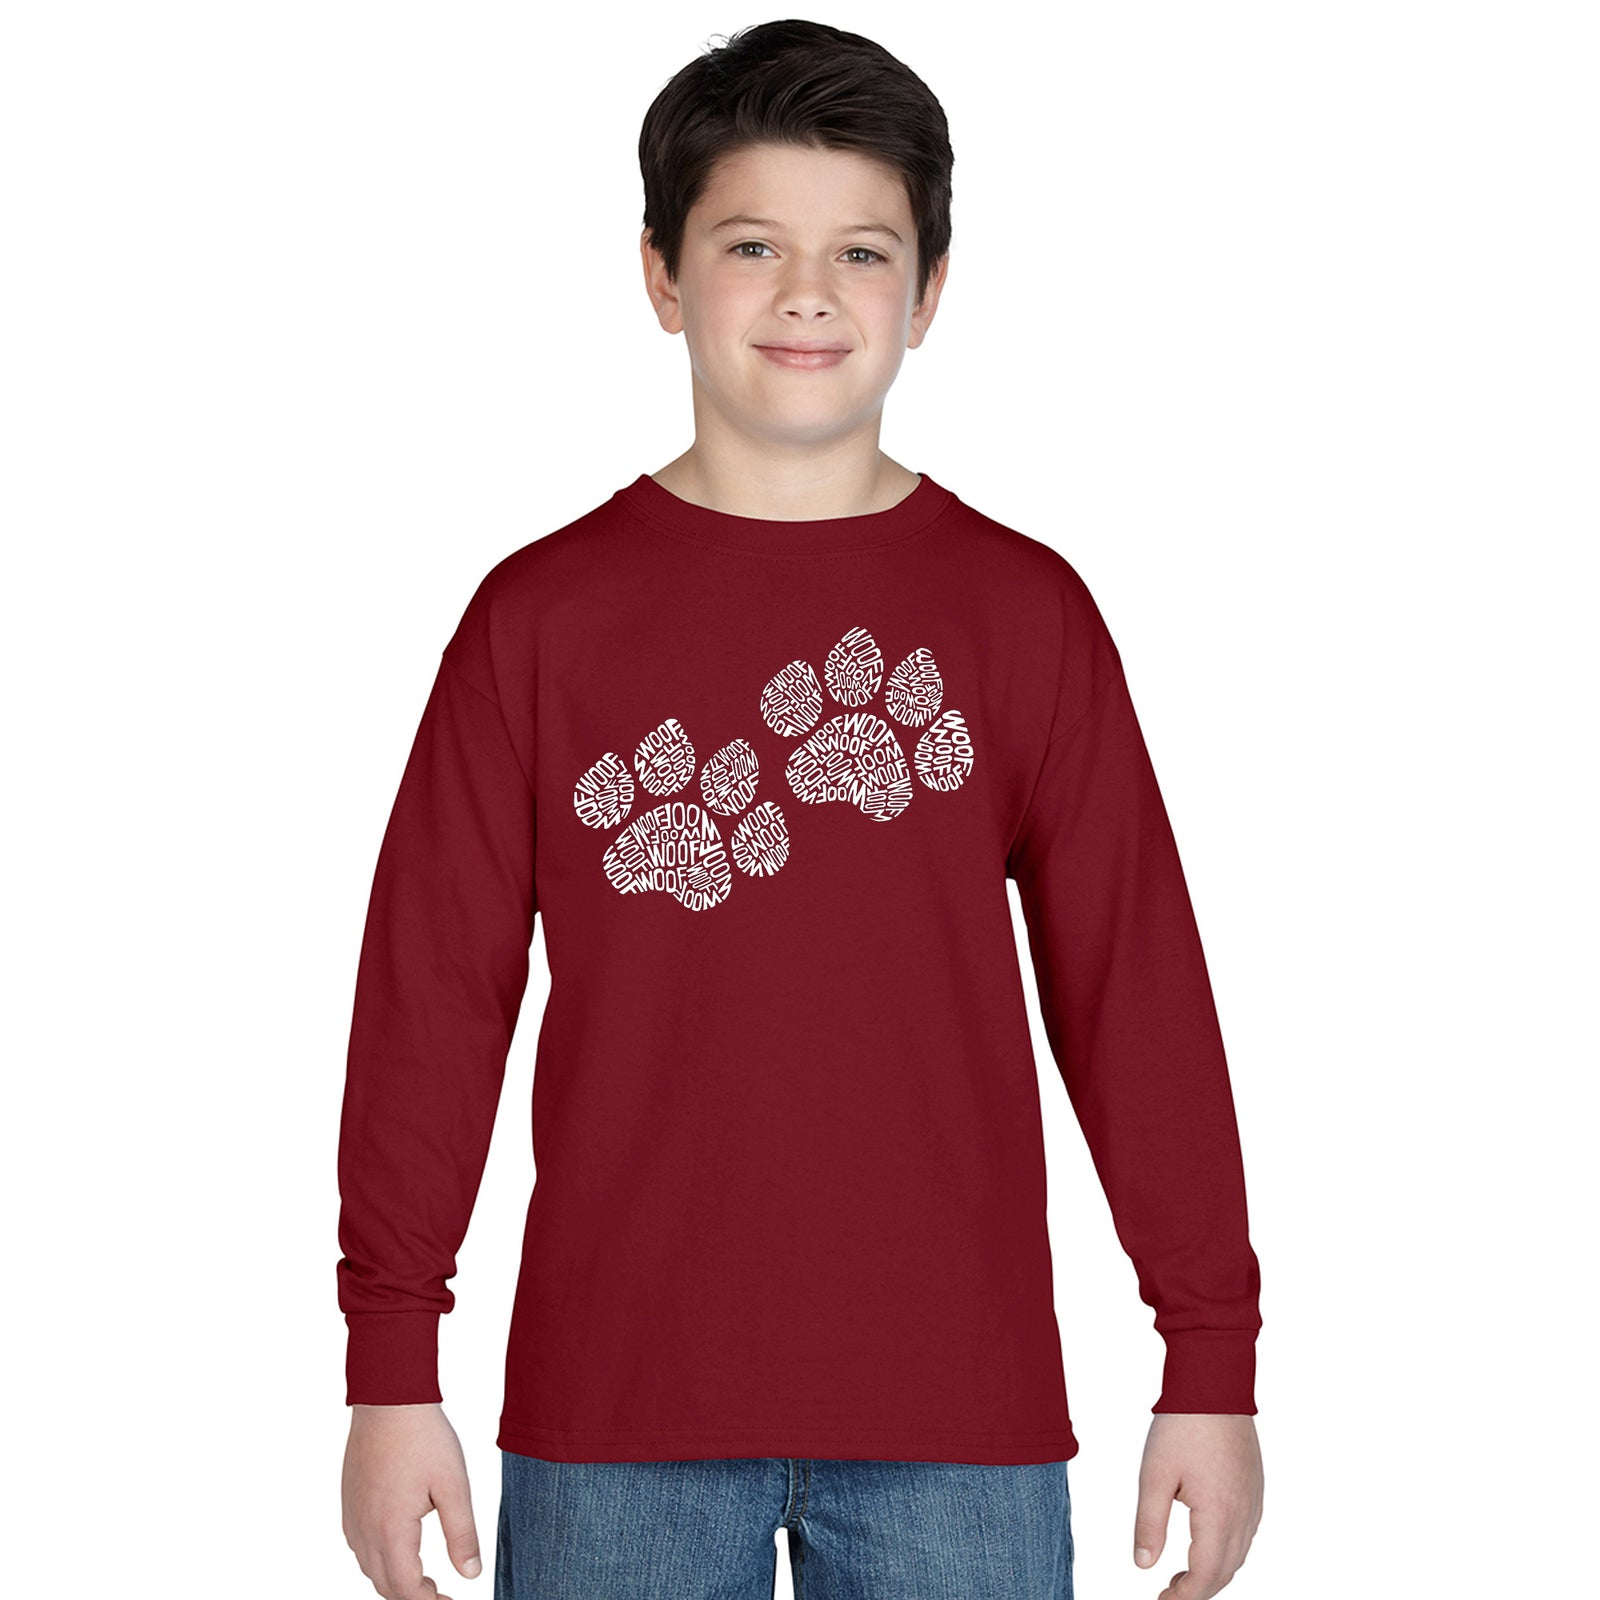 Boy's Long Sleeve - Woof Paw Prints